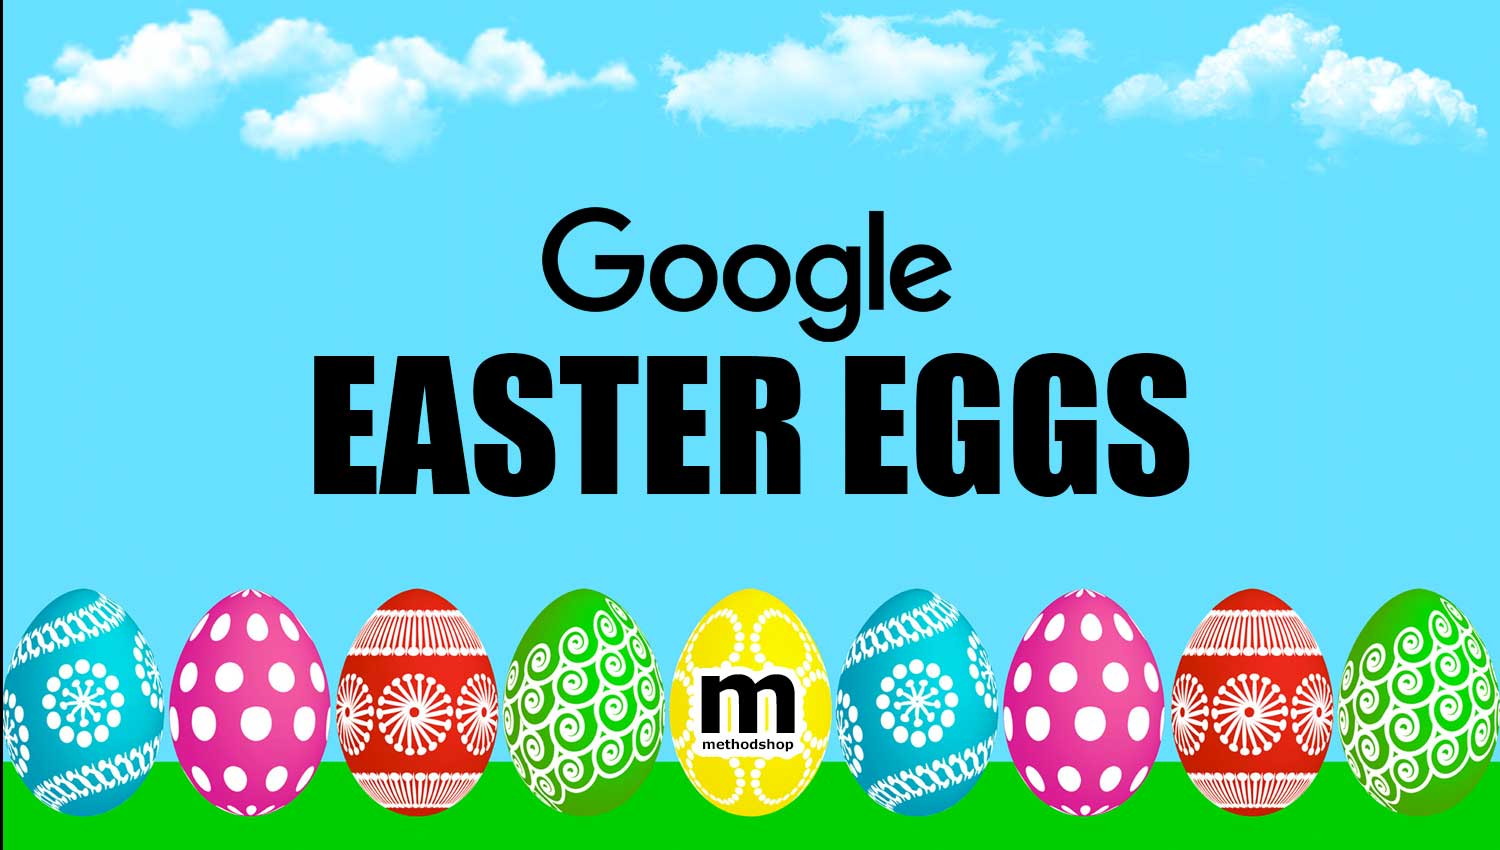 7 Great Google Easter Eggs You Might Have Missed